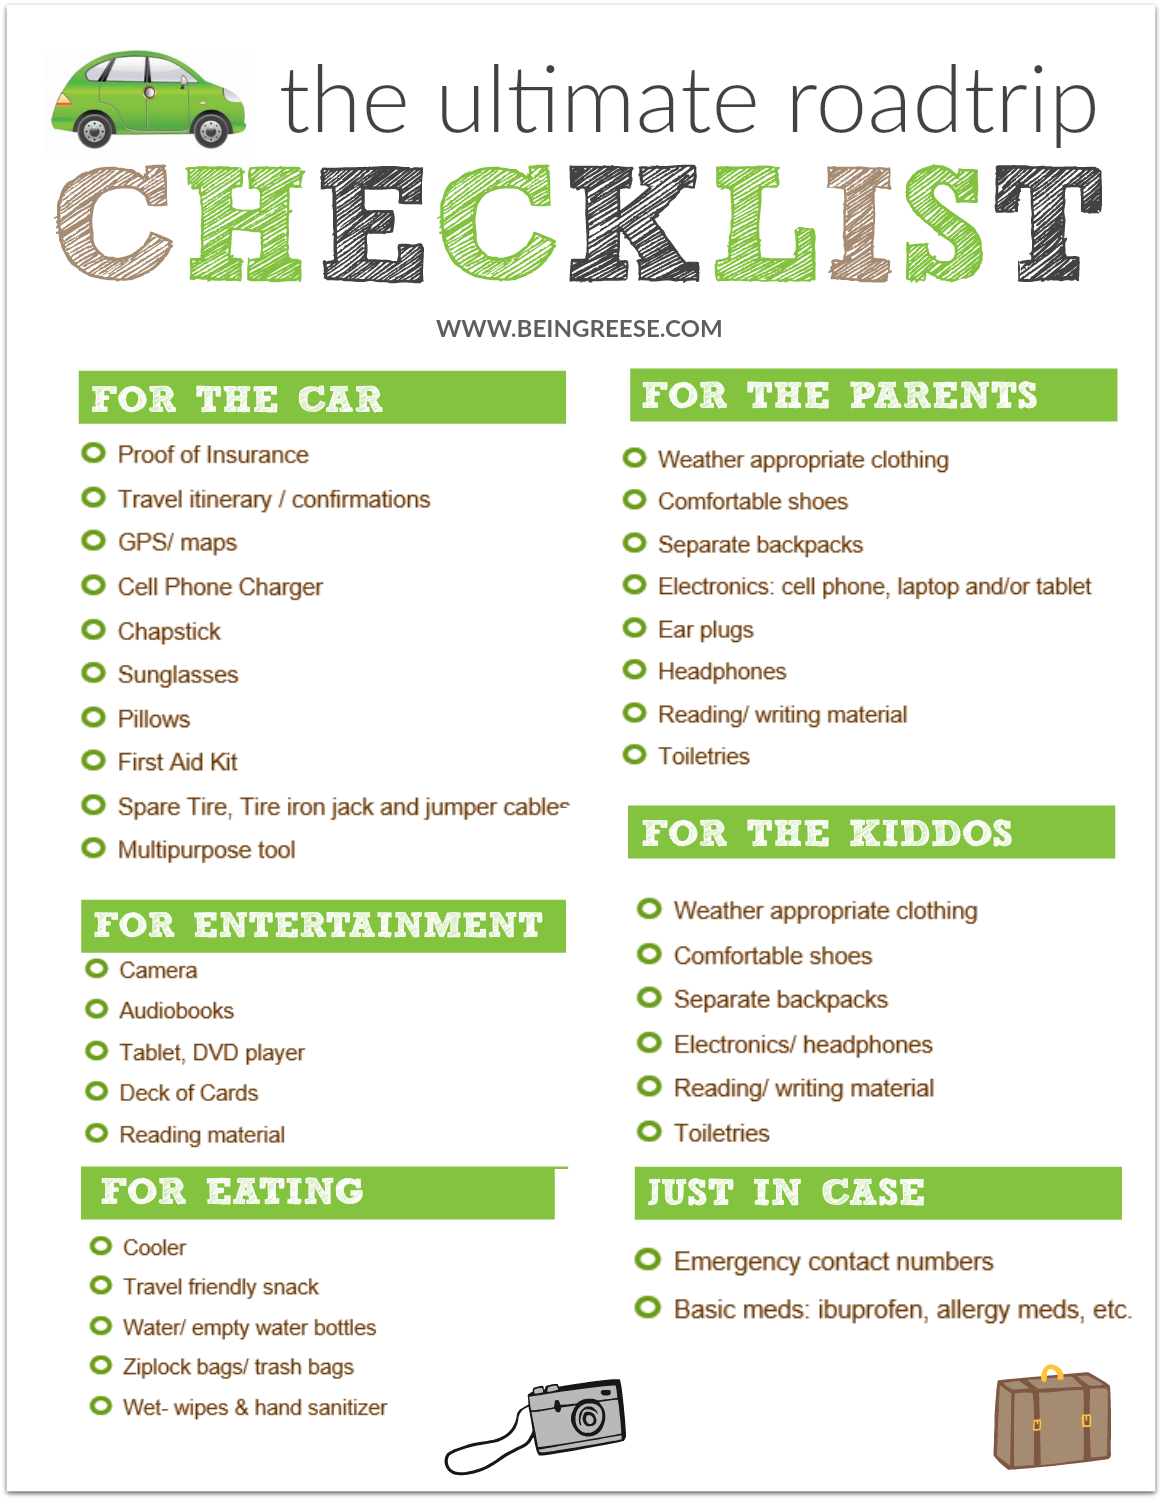 The ultimate road trip with kids checklist